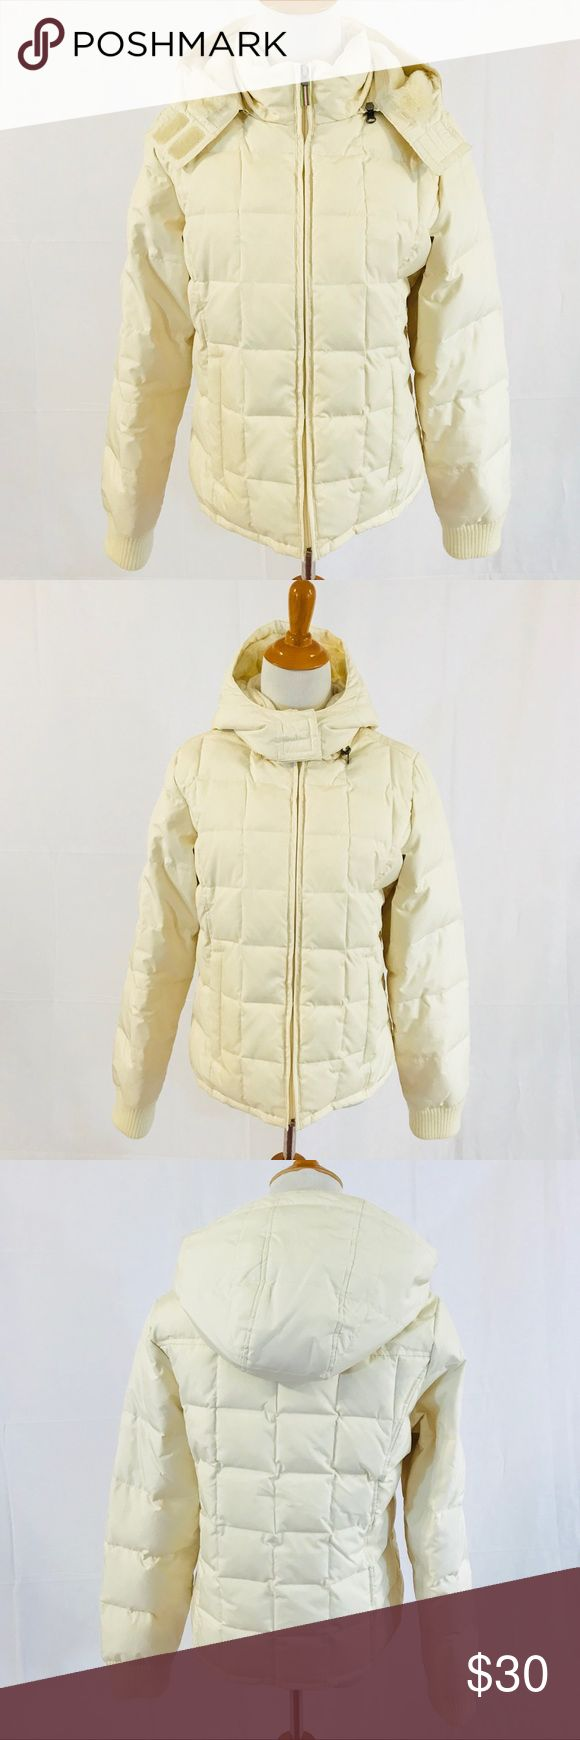 """Cozy Warm Cream Puffer Jacket Old Navy Like new, and perfect. So warm and pretty. The faux fur lining in the hood is super soft! Measures 20"""" across chest, 23"""" long. Please no trades or insulting offers. Old Navy Jackets & Coats Puffers"""